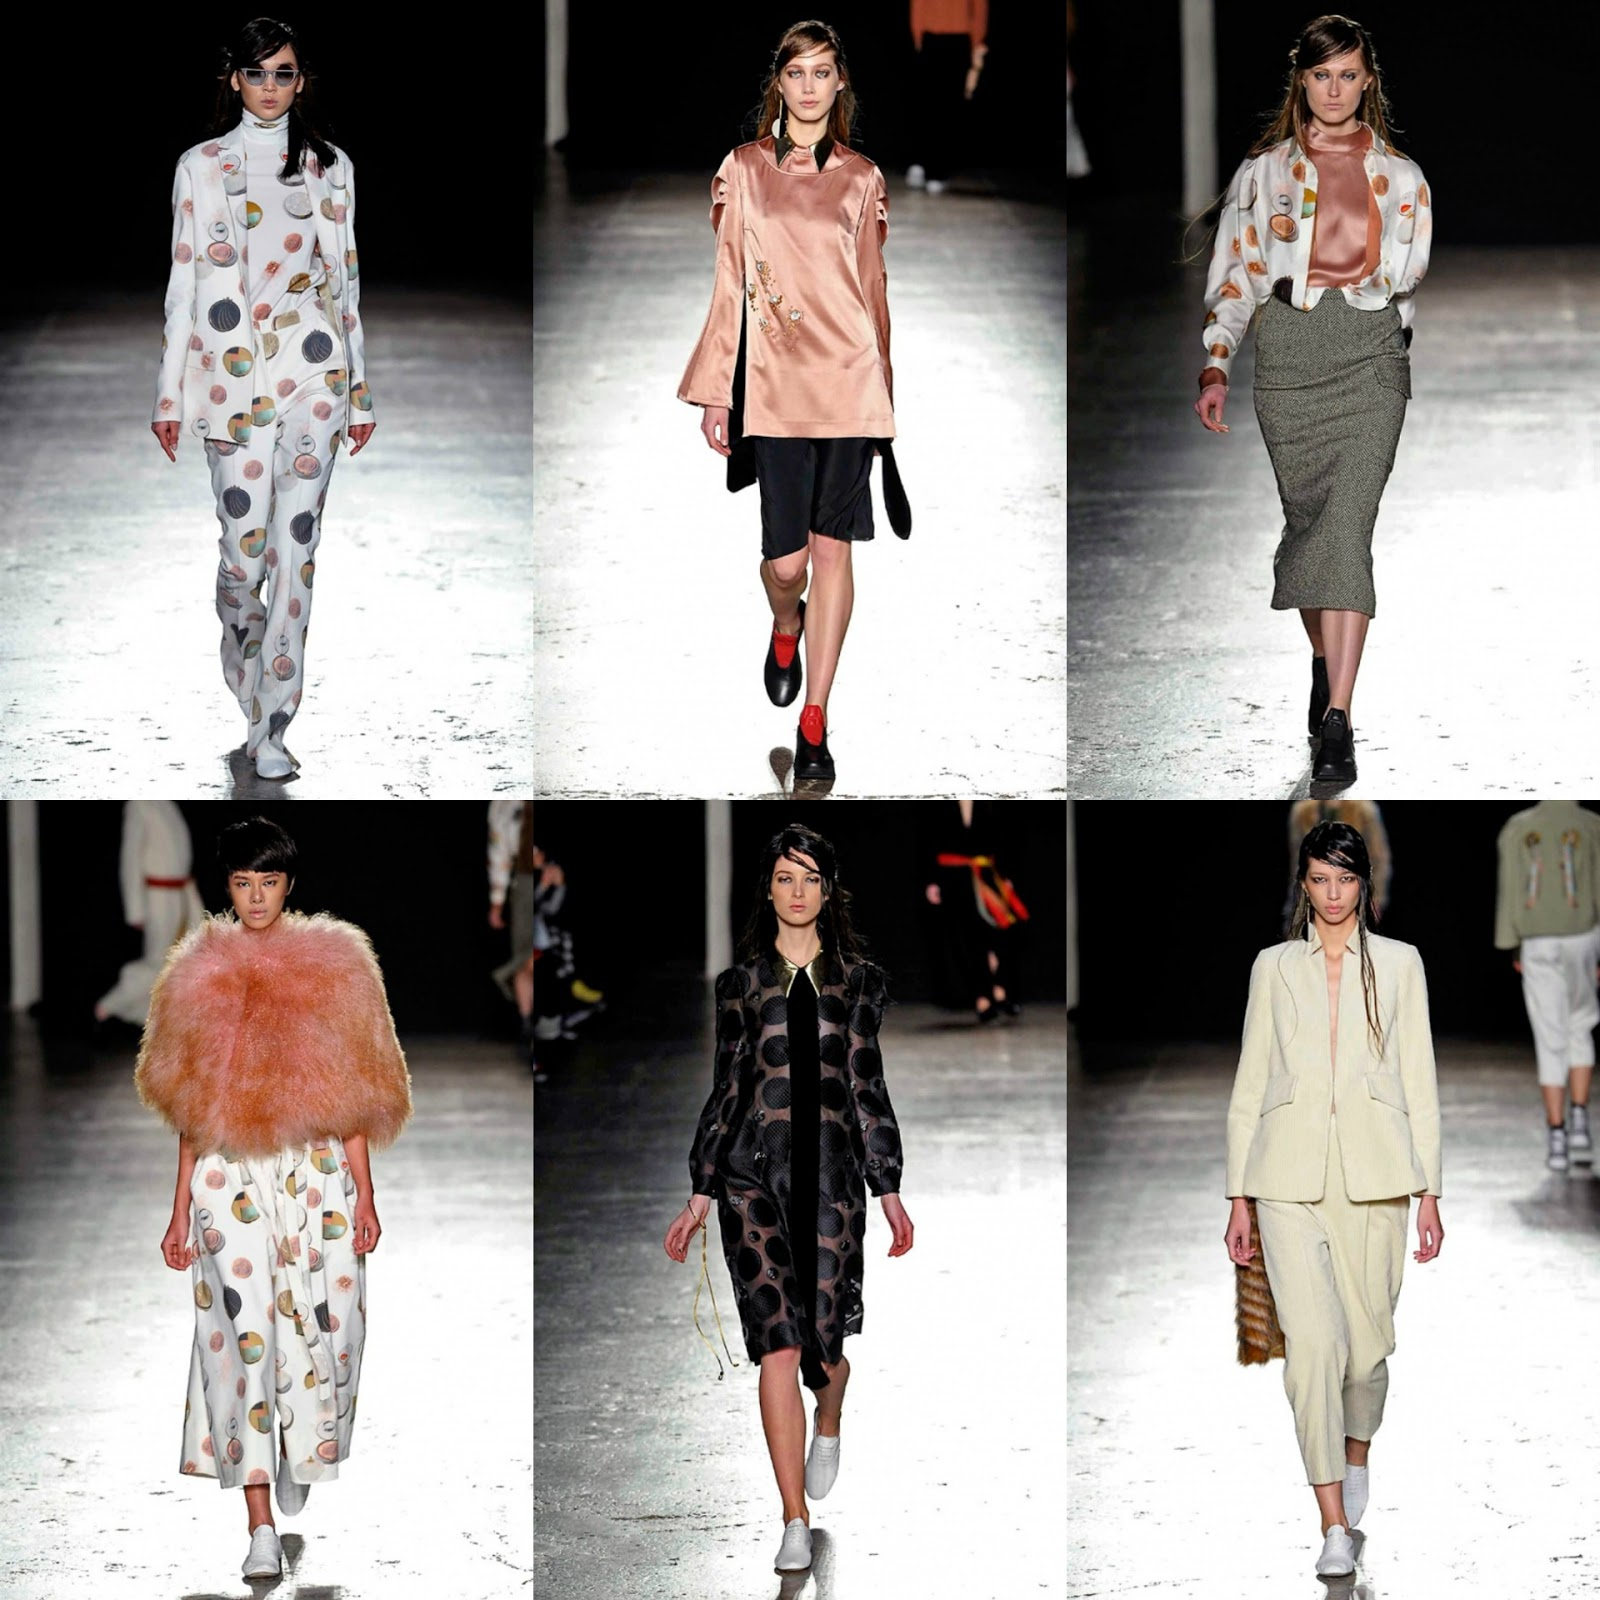 Eniwhere Fashion - sfilate - Milano Fashion Week - Alberto Zambelli